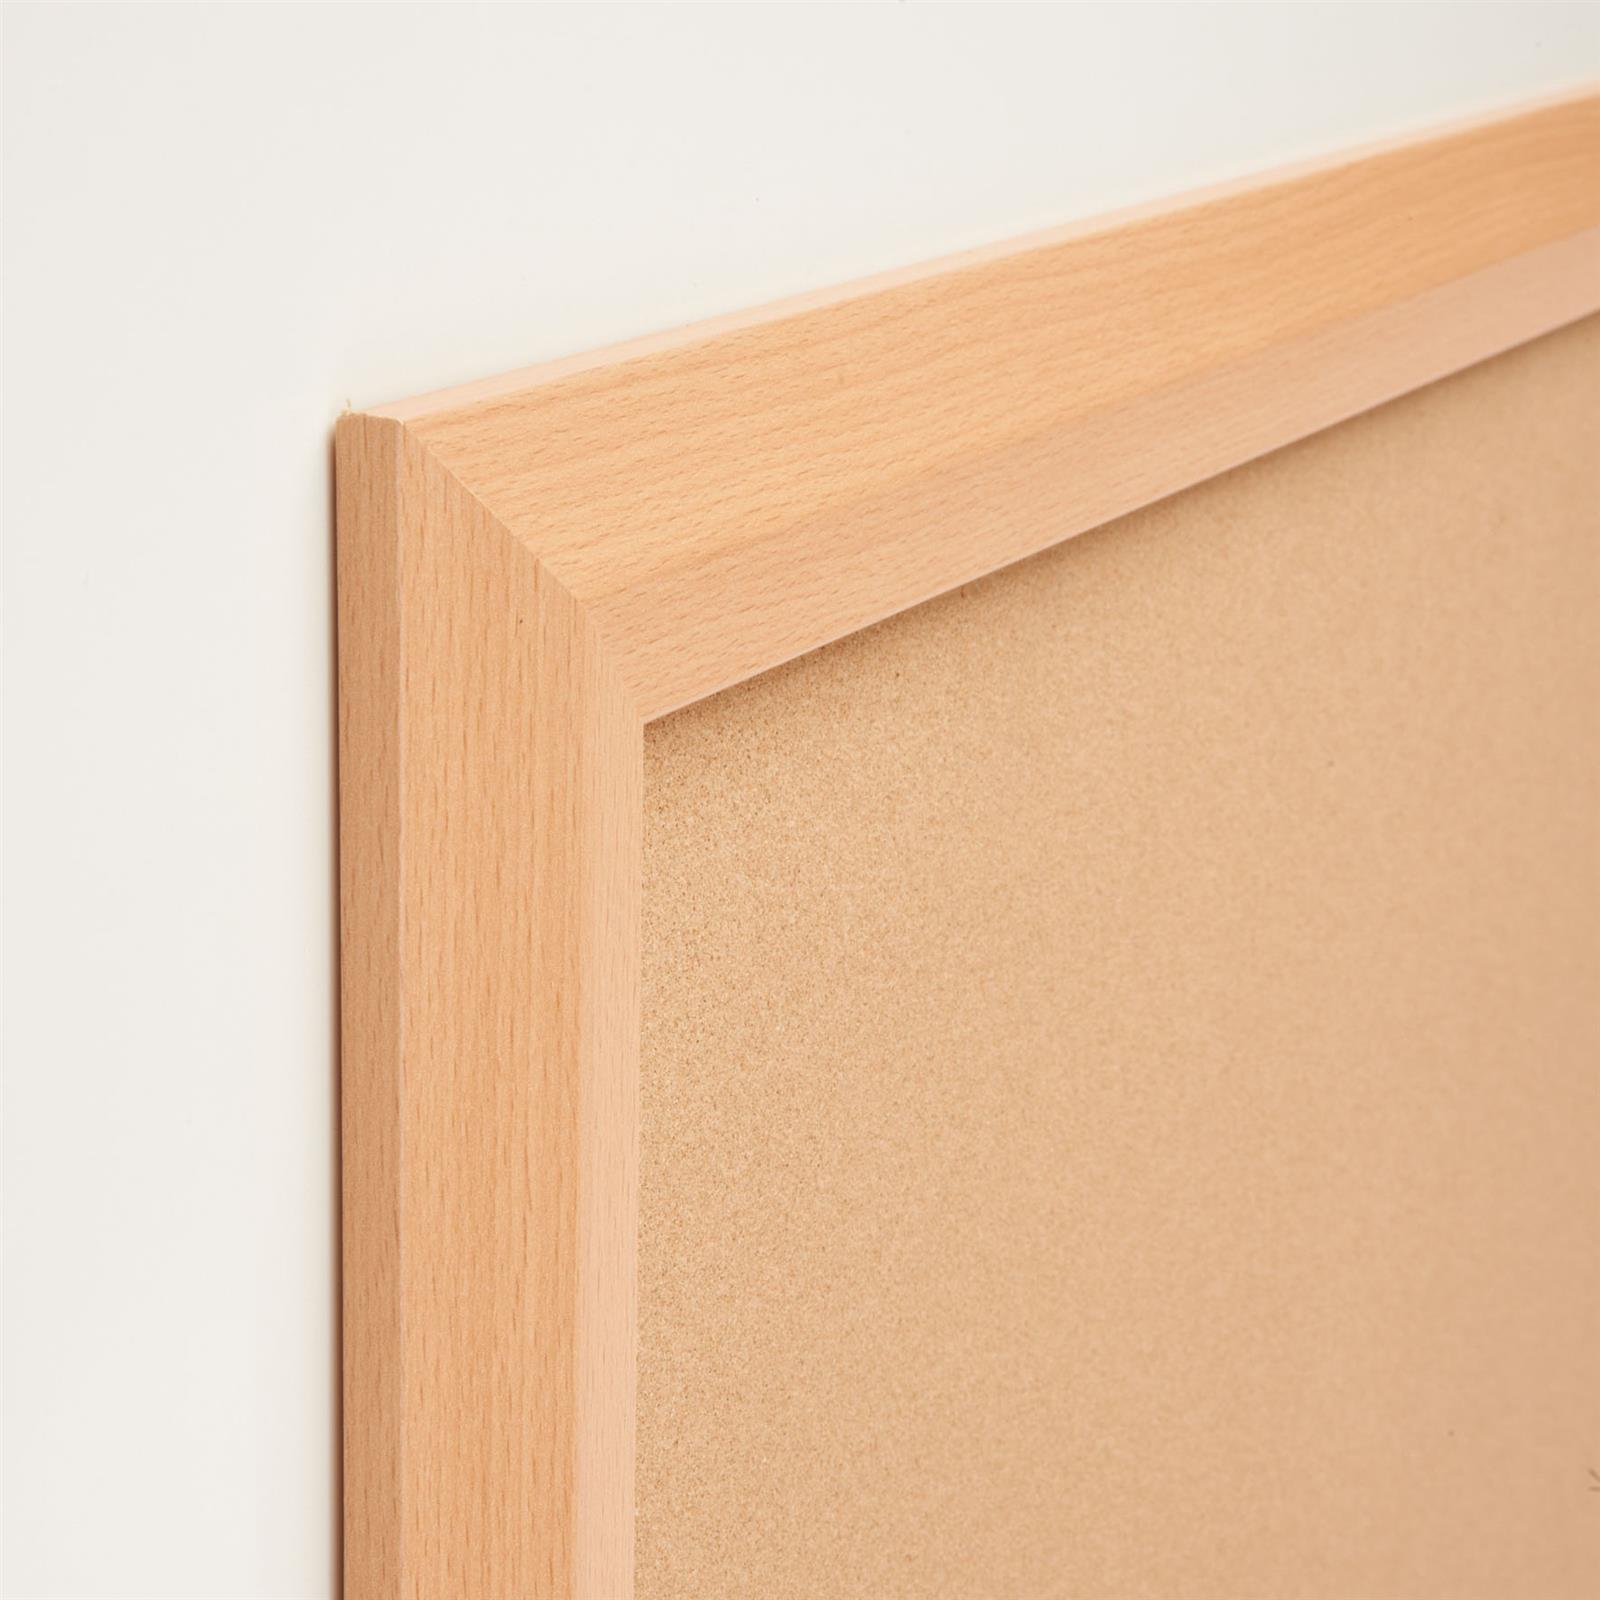 Eco-Premier 99% Recycled Cork Noticeboards